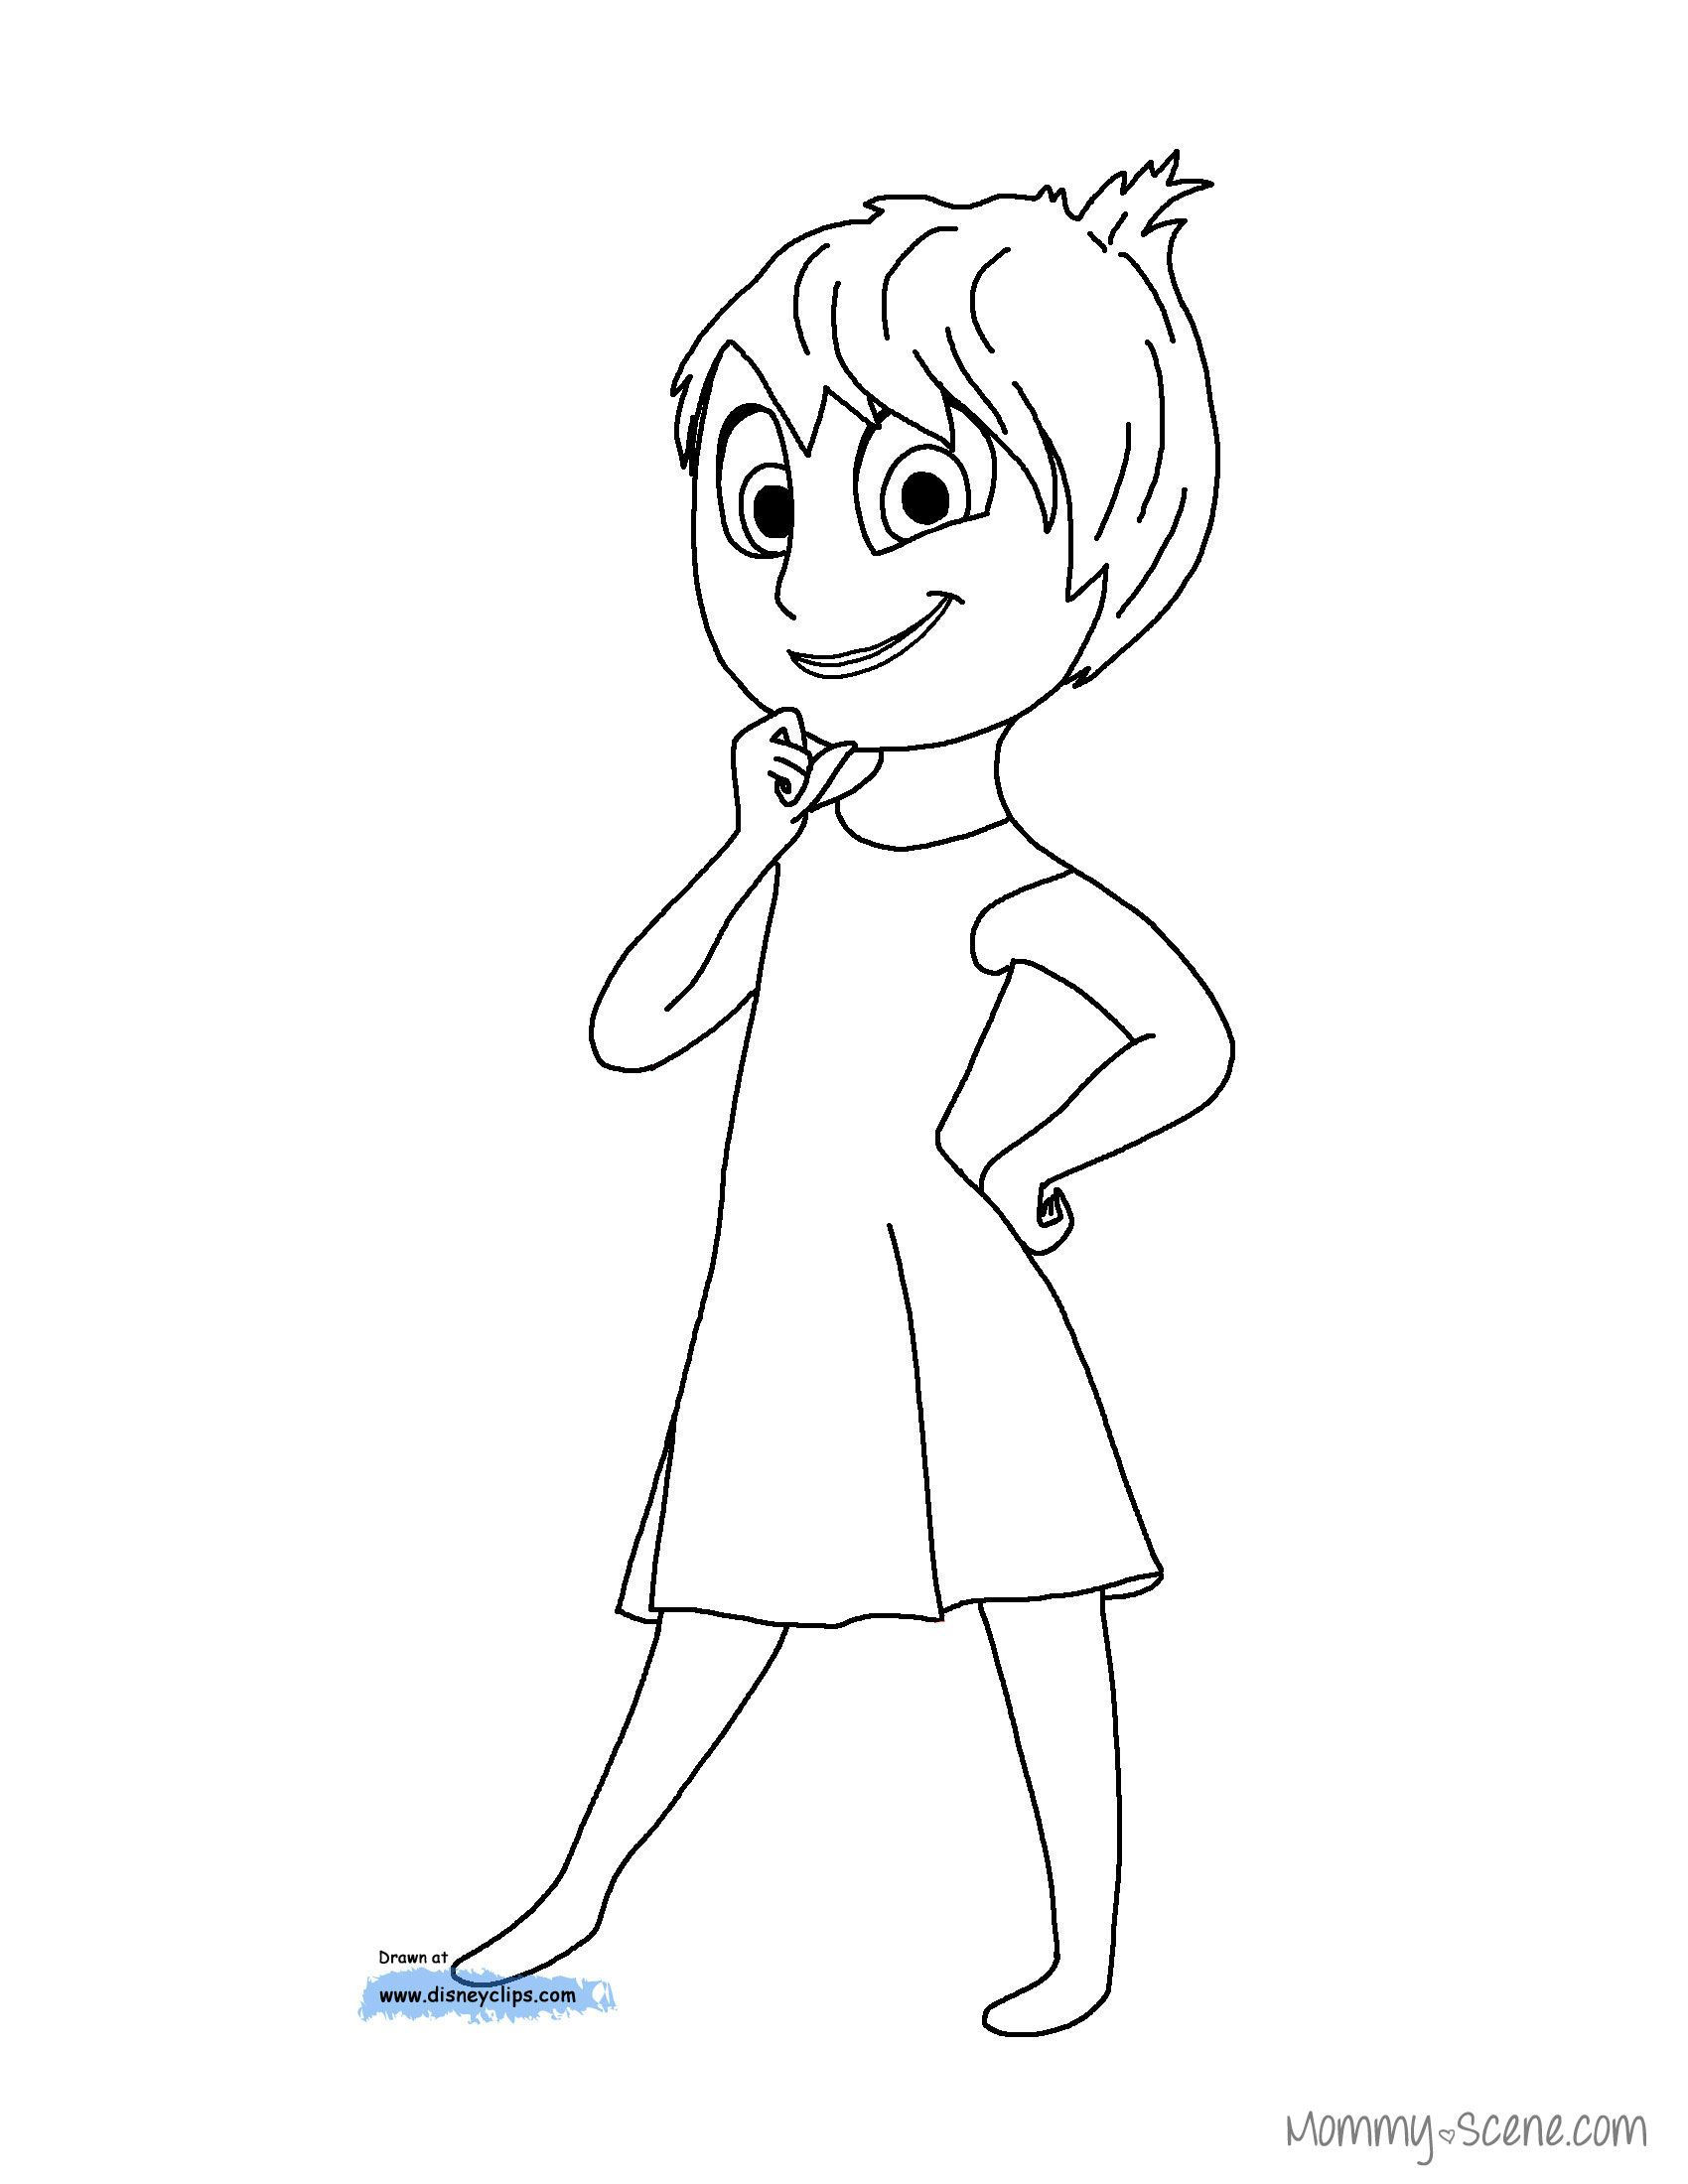 Inside out coloring pages riley - Disney S Inside Out Coloring Pages